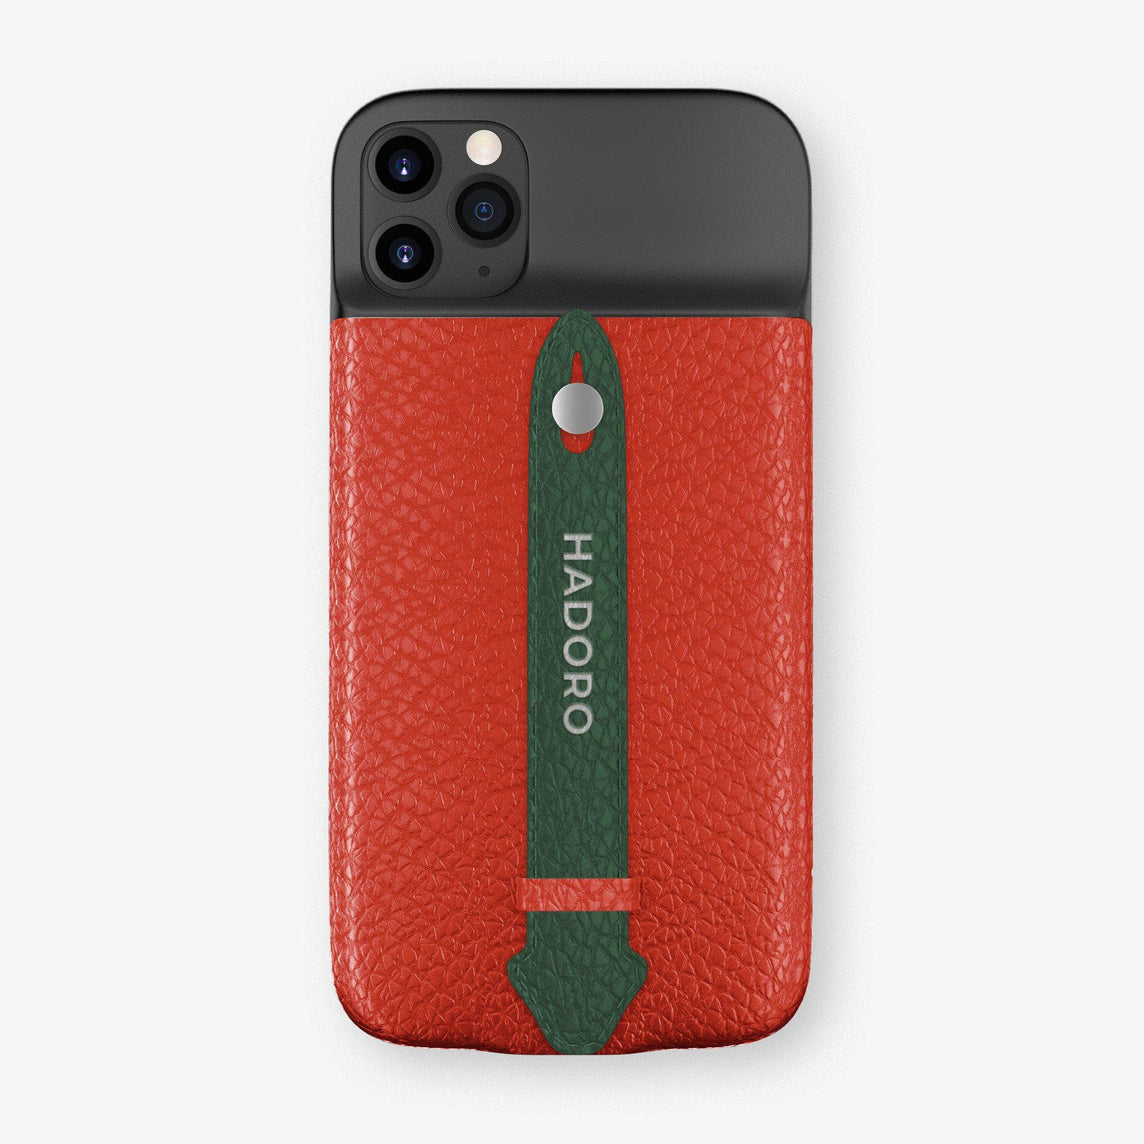 Calfskin Battery Finger Case for iPhone 11 Pro Max | Red/Green - Stainless Steel without-personalization